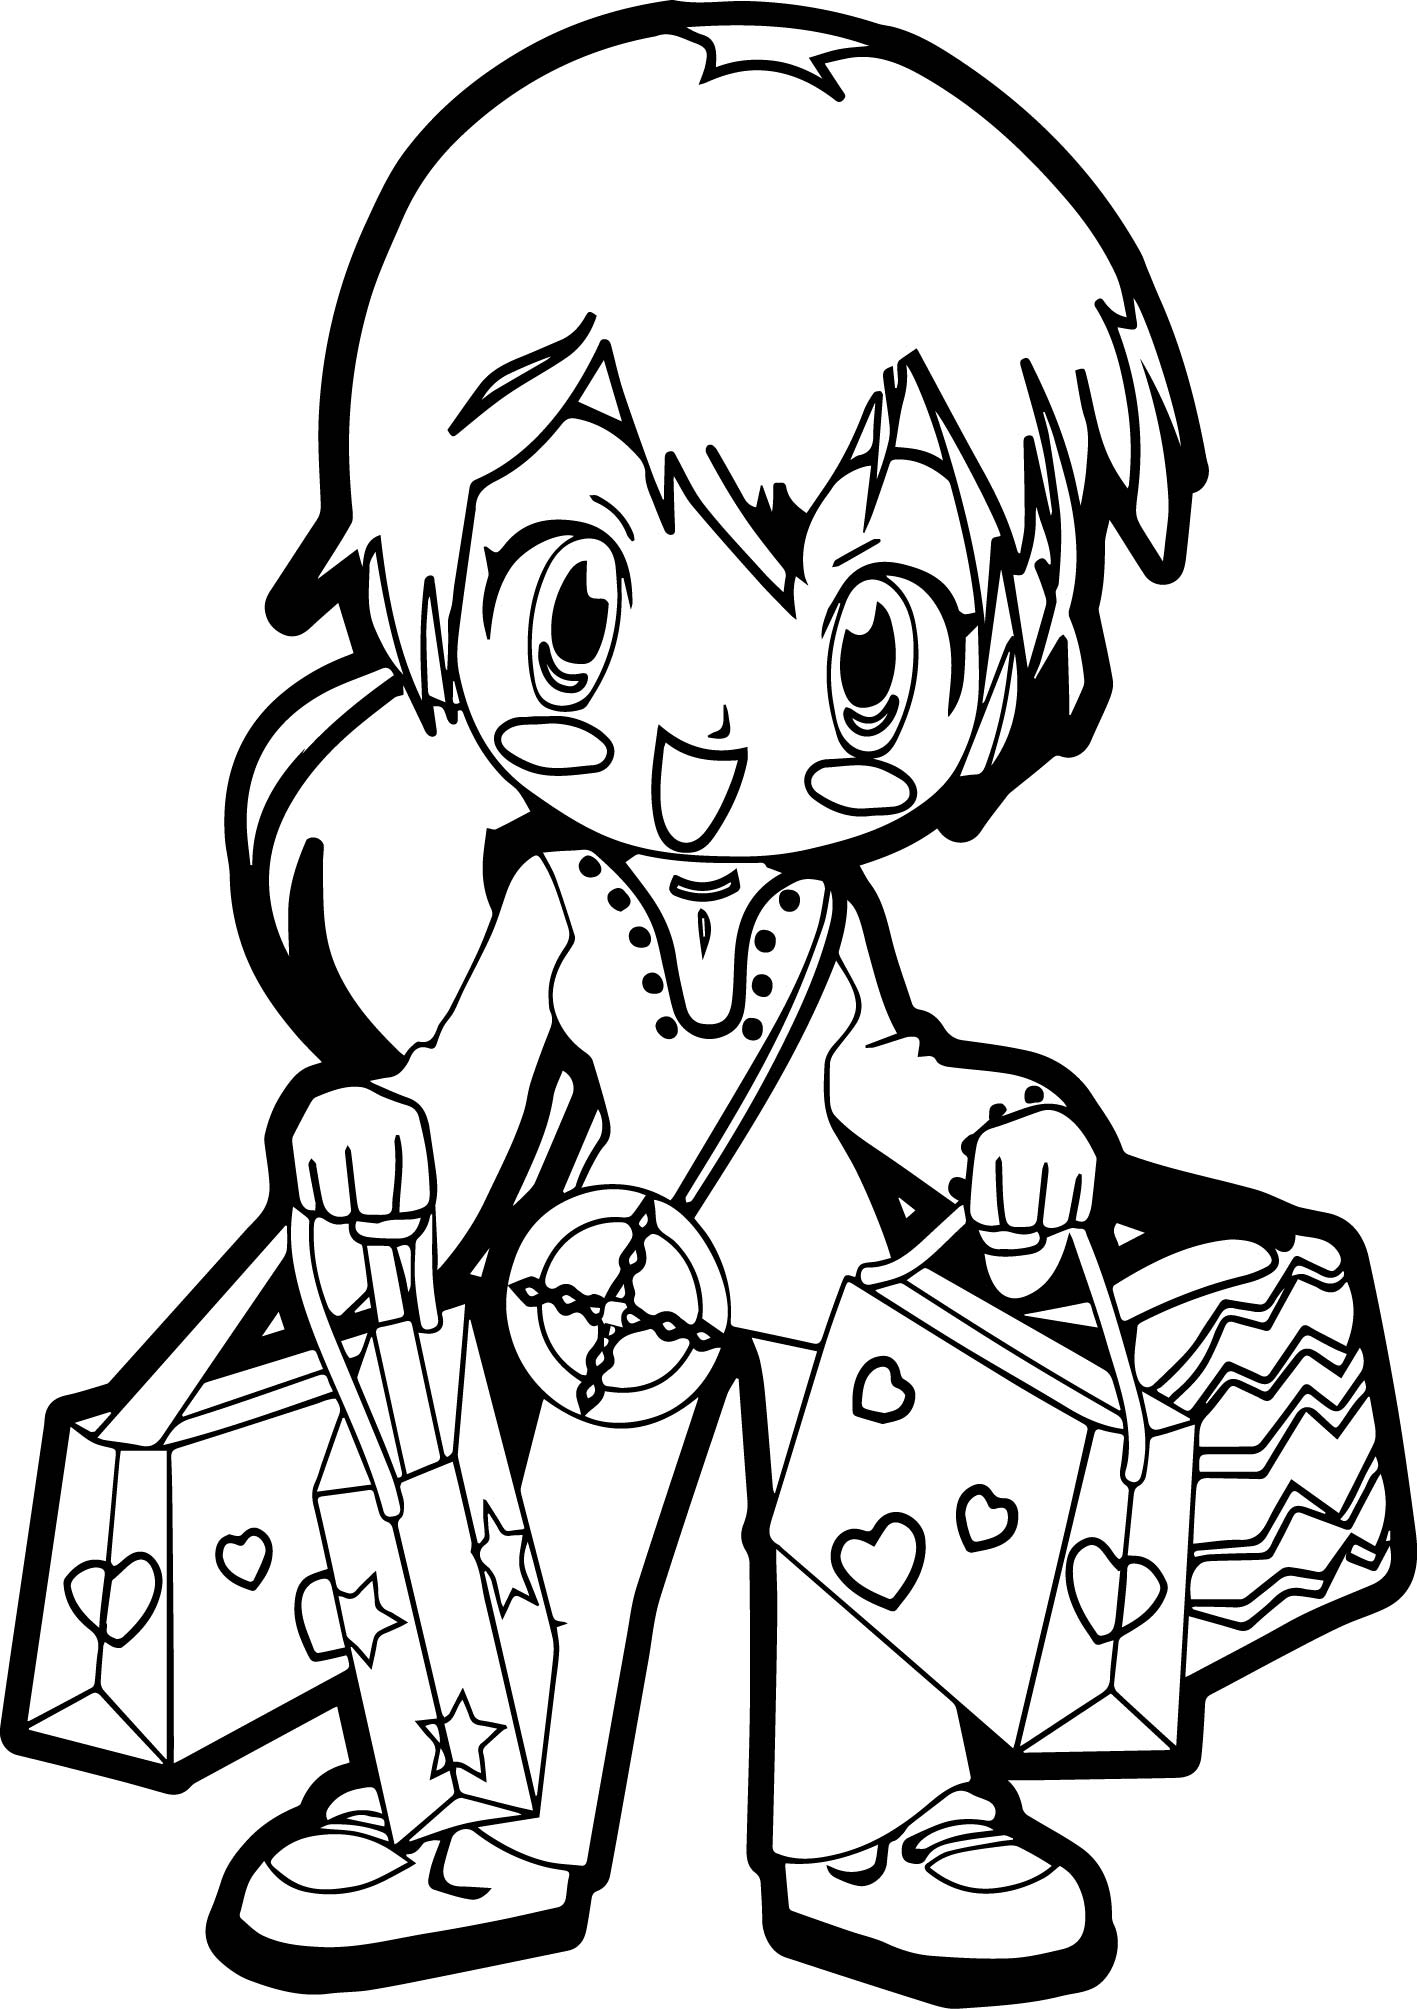 Pretty Cute Anime Girls Coloring Pages for Kids Womanmate Collection Of Christmas Shopping Coloring Page Download